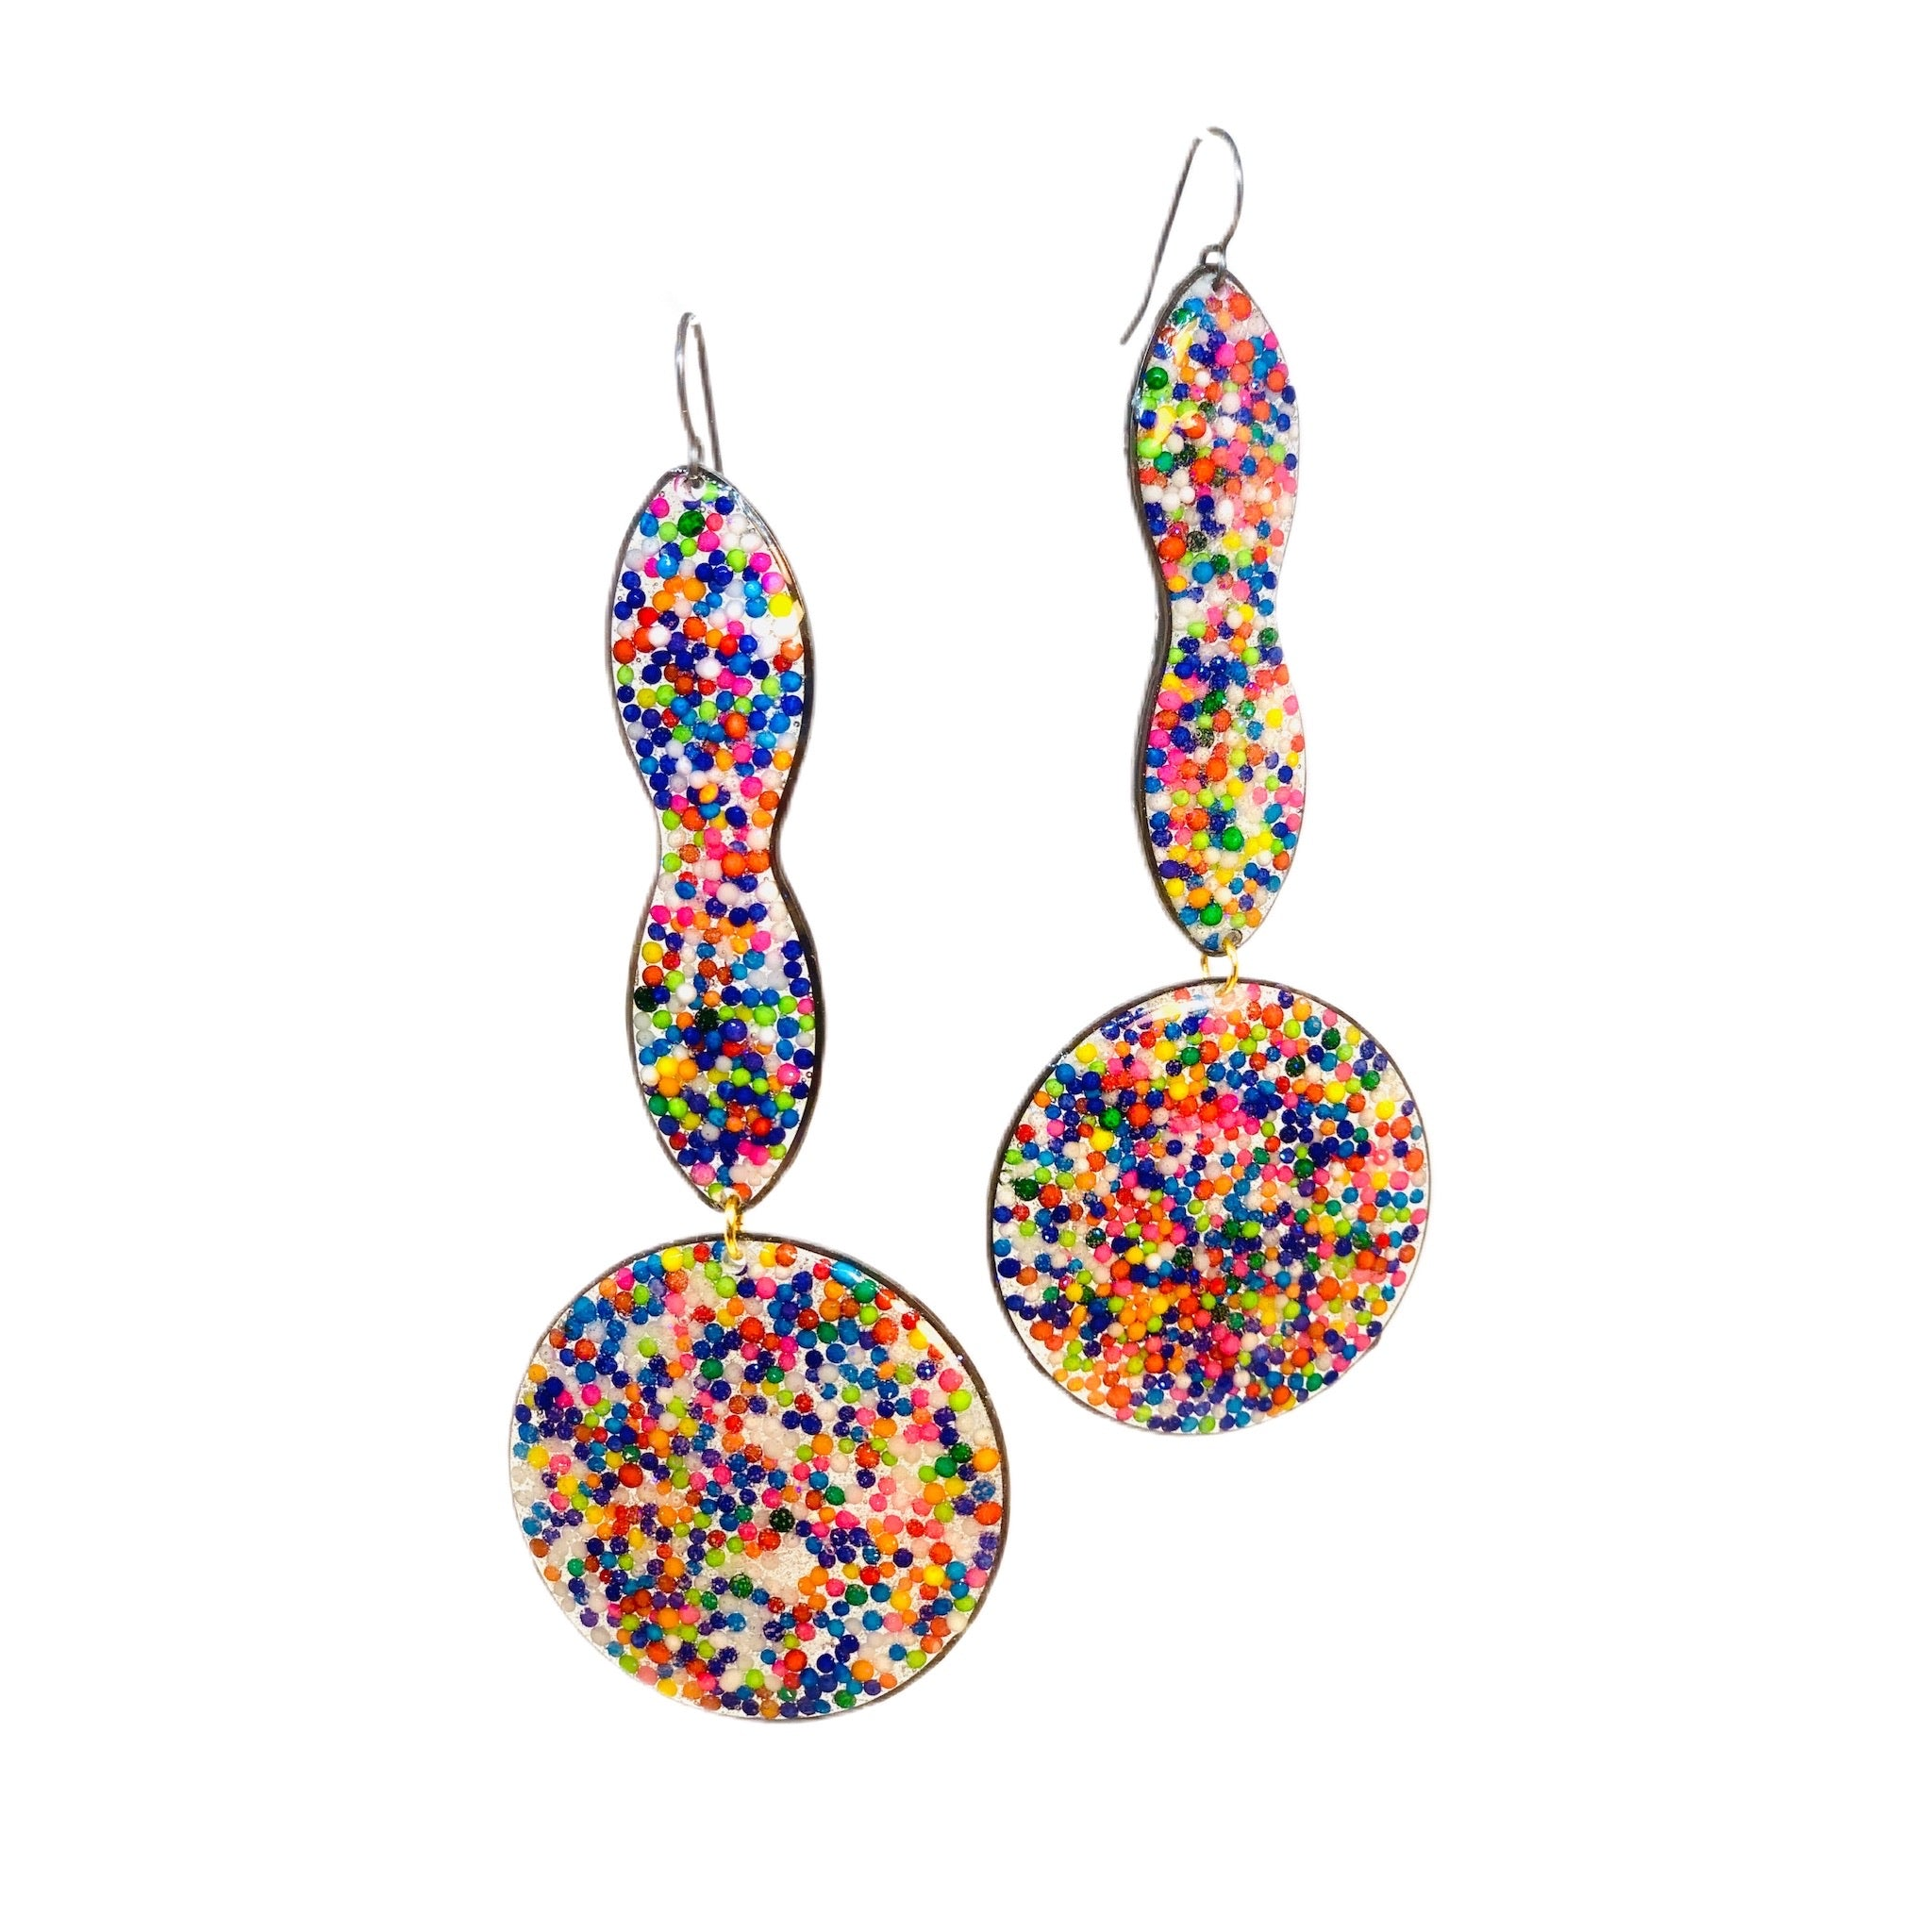 Venus Rainbow Sprinkle Earrings